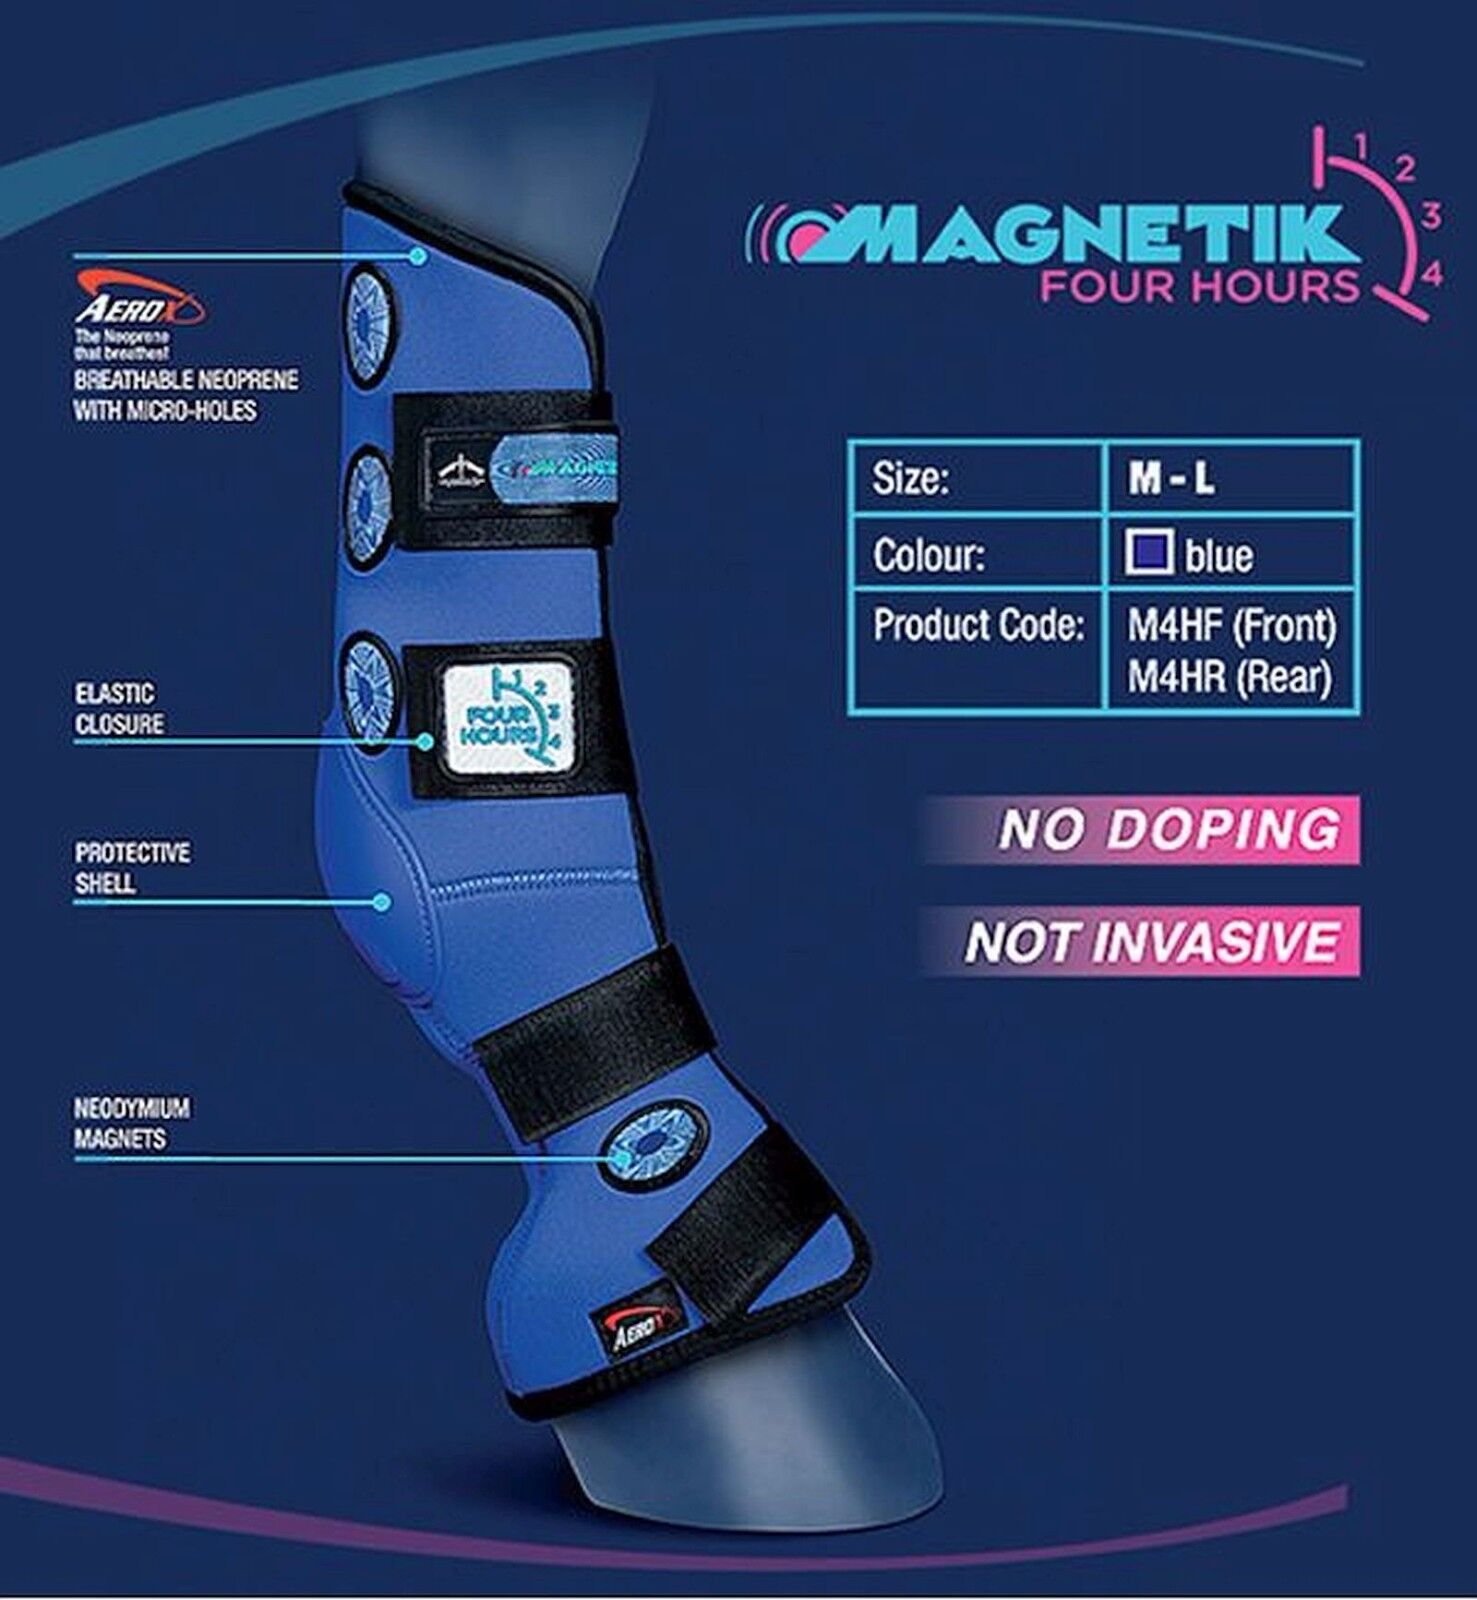 VEROTUS 4 HOUR Intensive Magnetic Therapy Stiefel M/L, REAR M/L, Stiefel FREE NEXT-DAY DELIVERY c25a2c